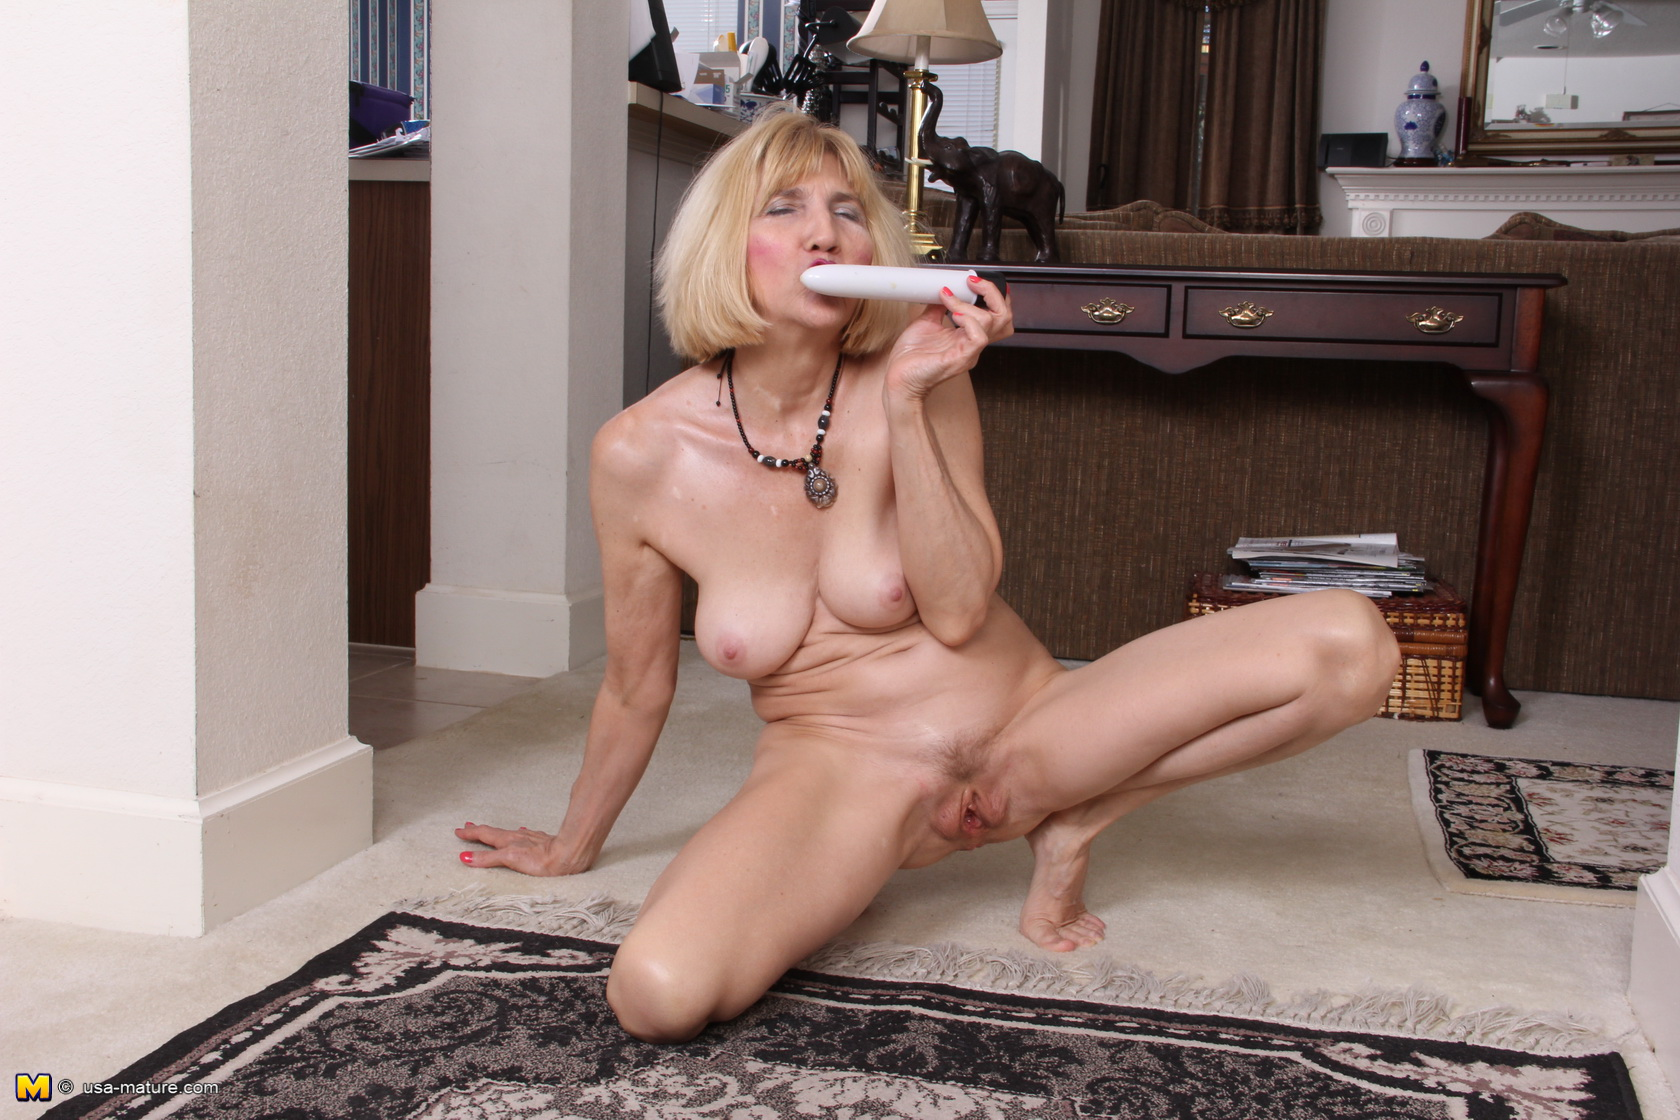 Mature hairy blonde nudes useful question